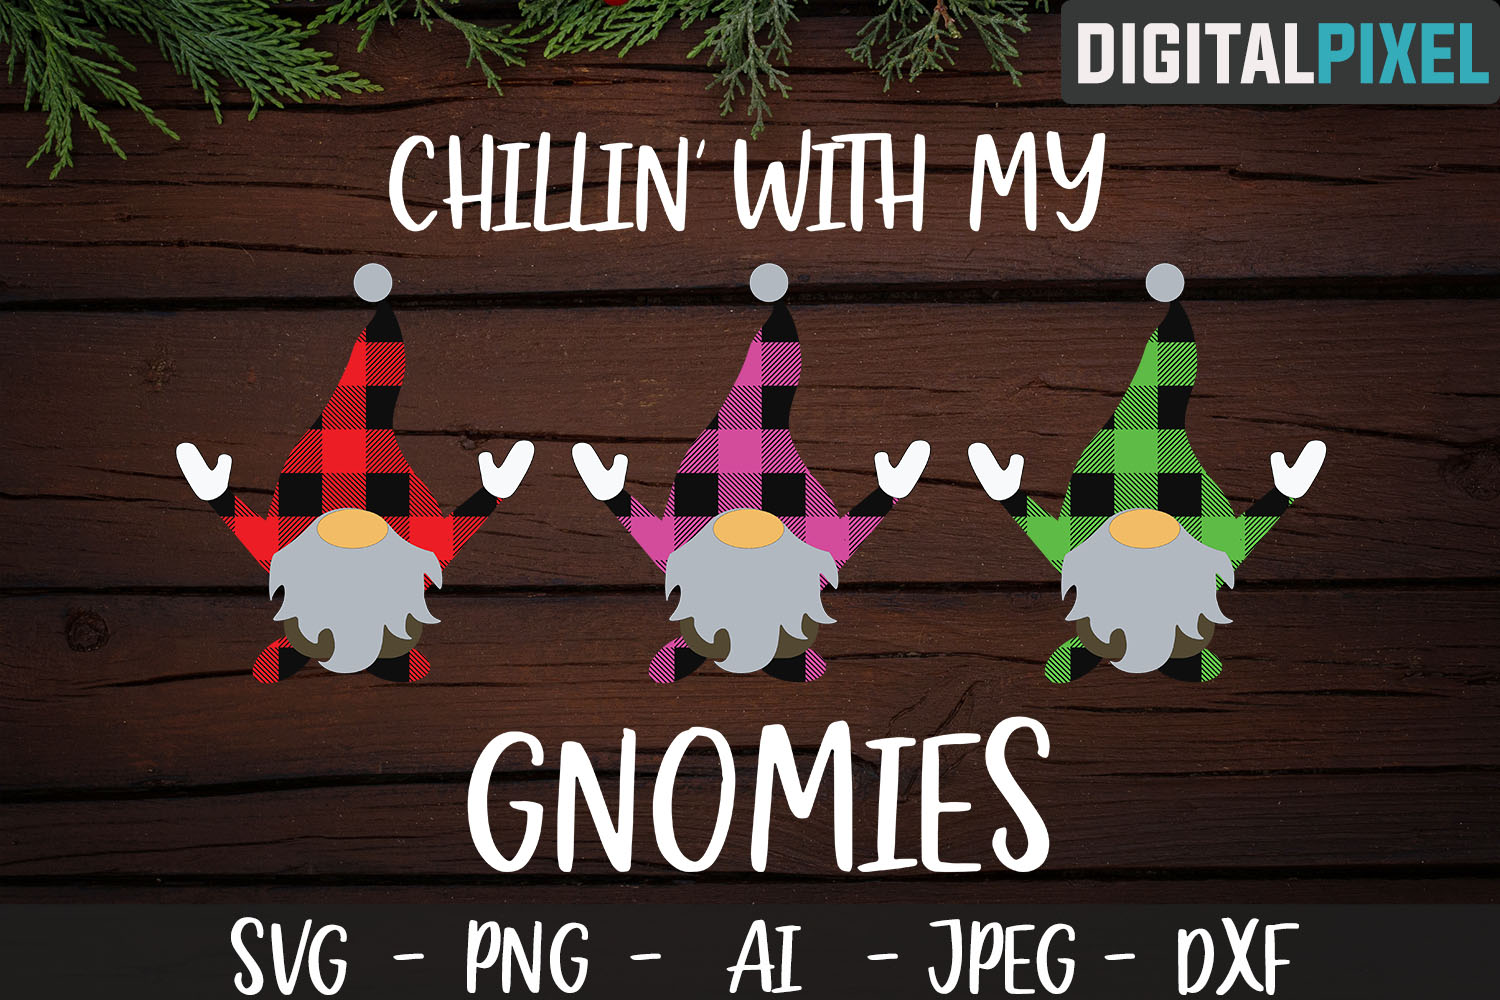 Buffalo Plaid Chillin With My Gnomies SVG PNG JPEG DXF example image 1